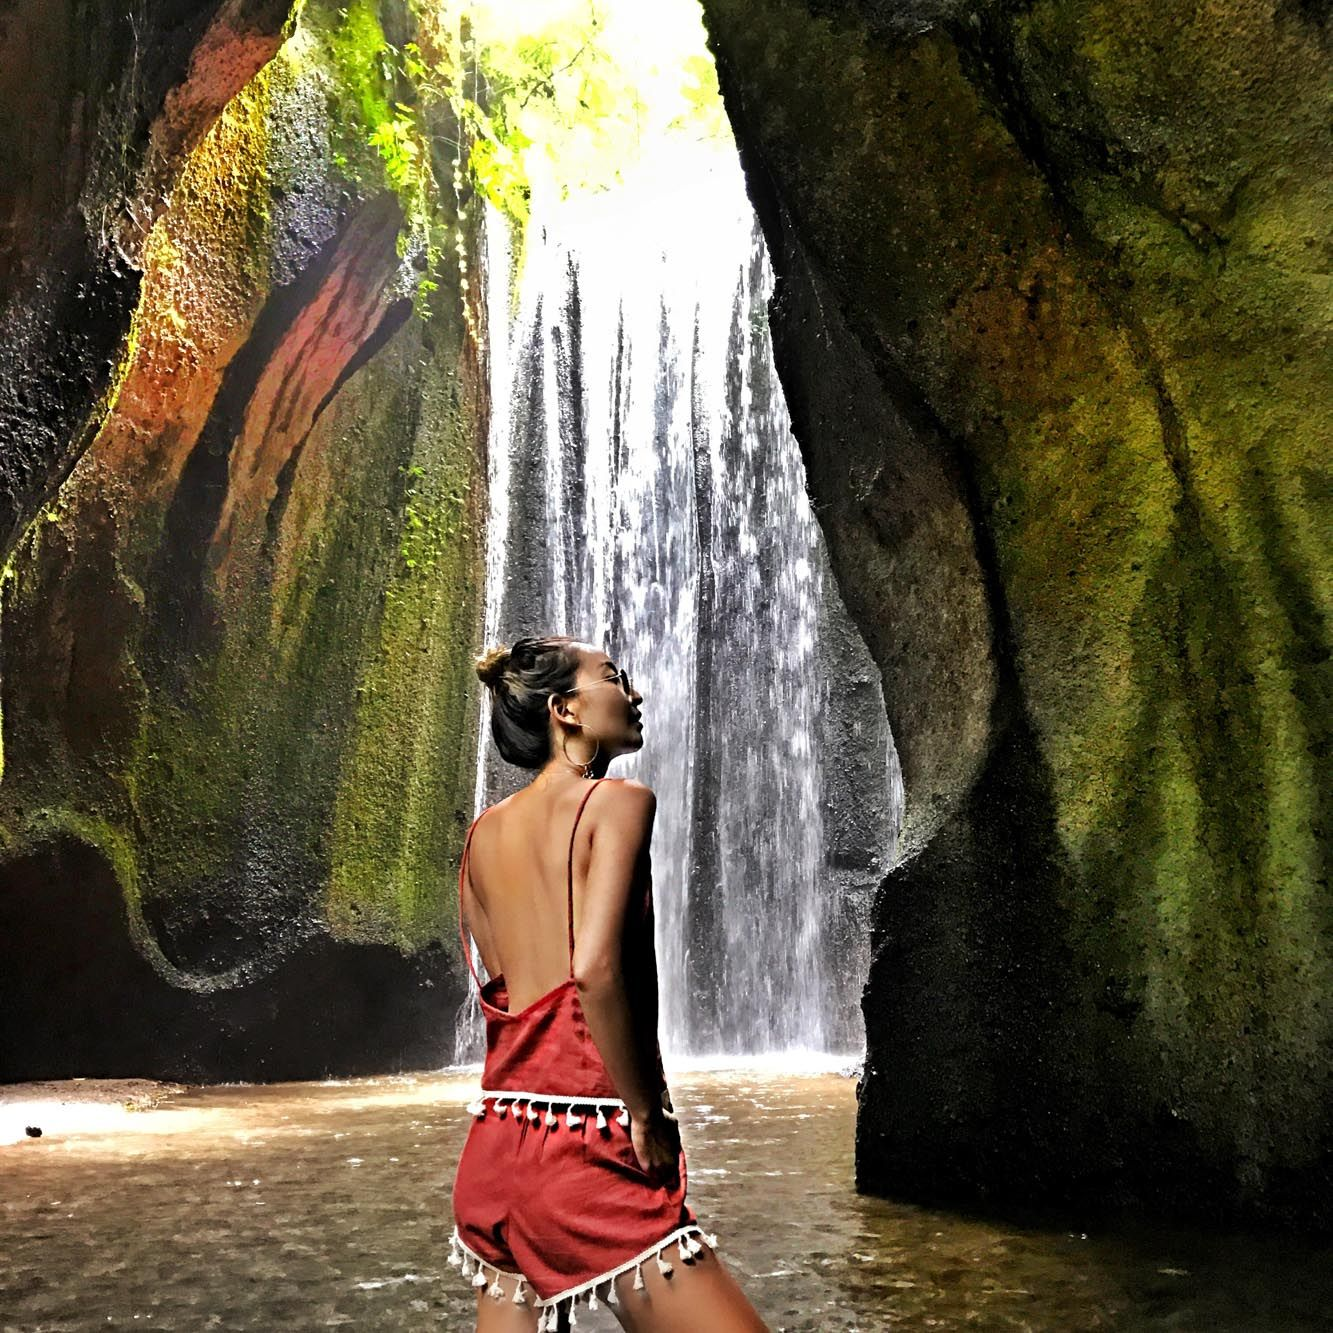 Best Waterfalls in Bali - Tukud Cepung